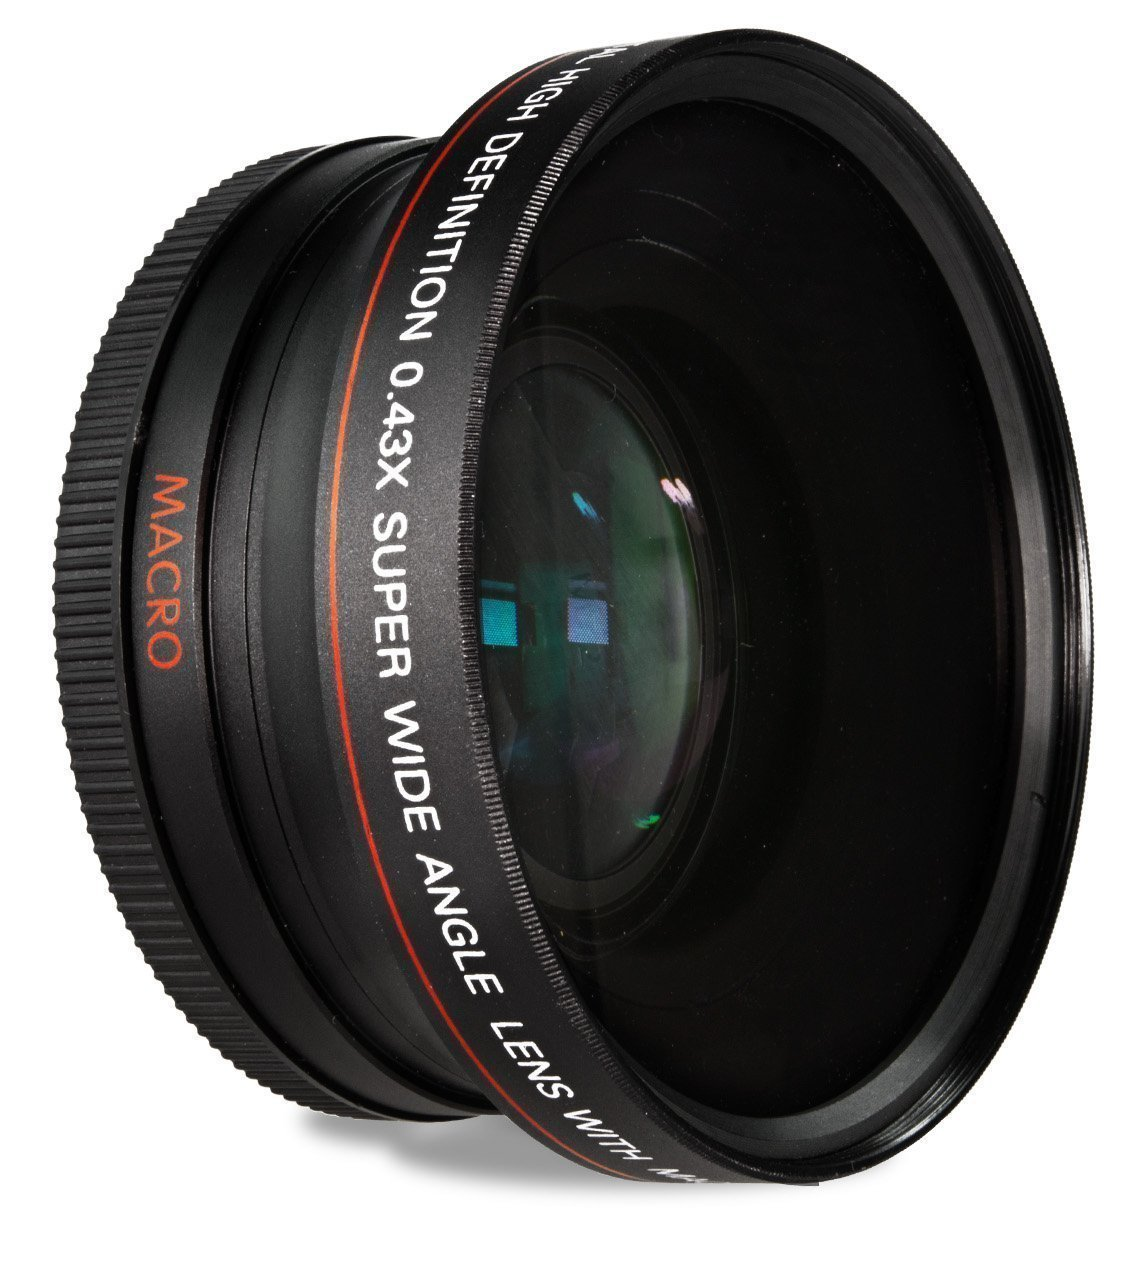 Screw-on wide angle lens